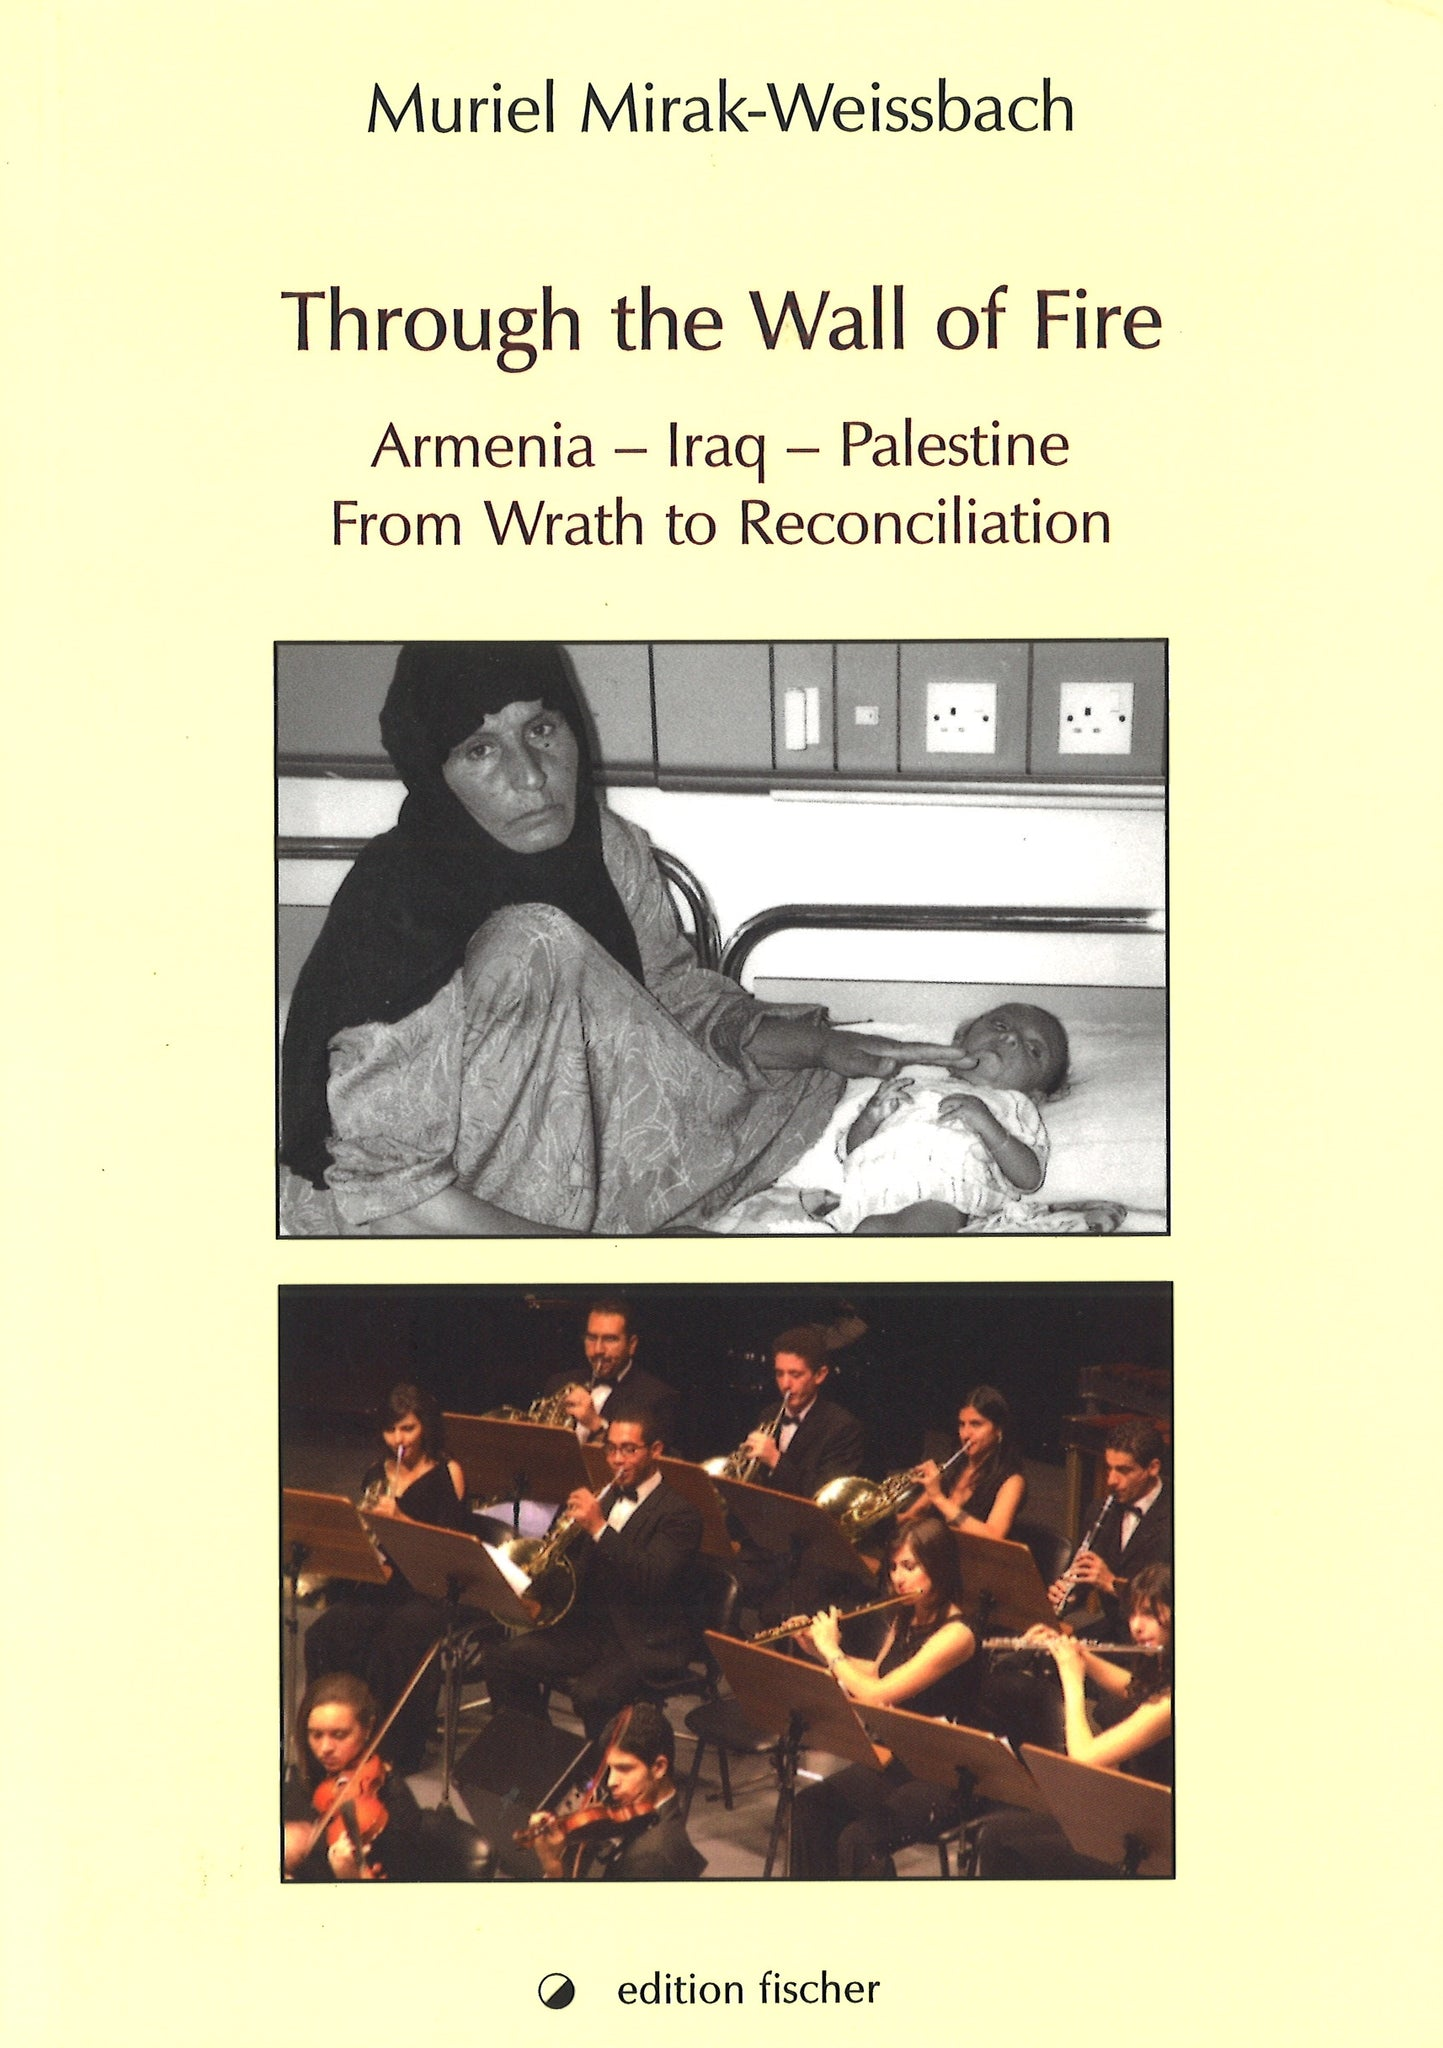 THROUGH THE WALL OF FIRE - Armenia - Iraq - Palestine: From Wrath to Reconciliation